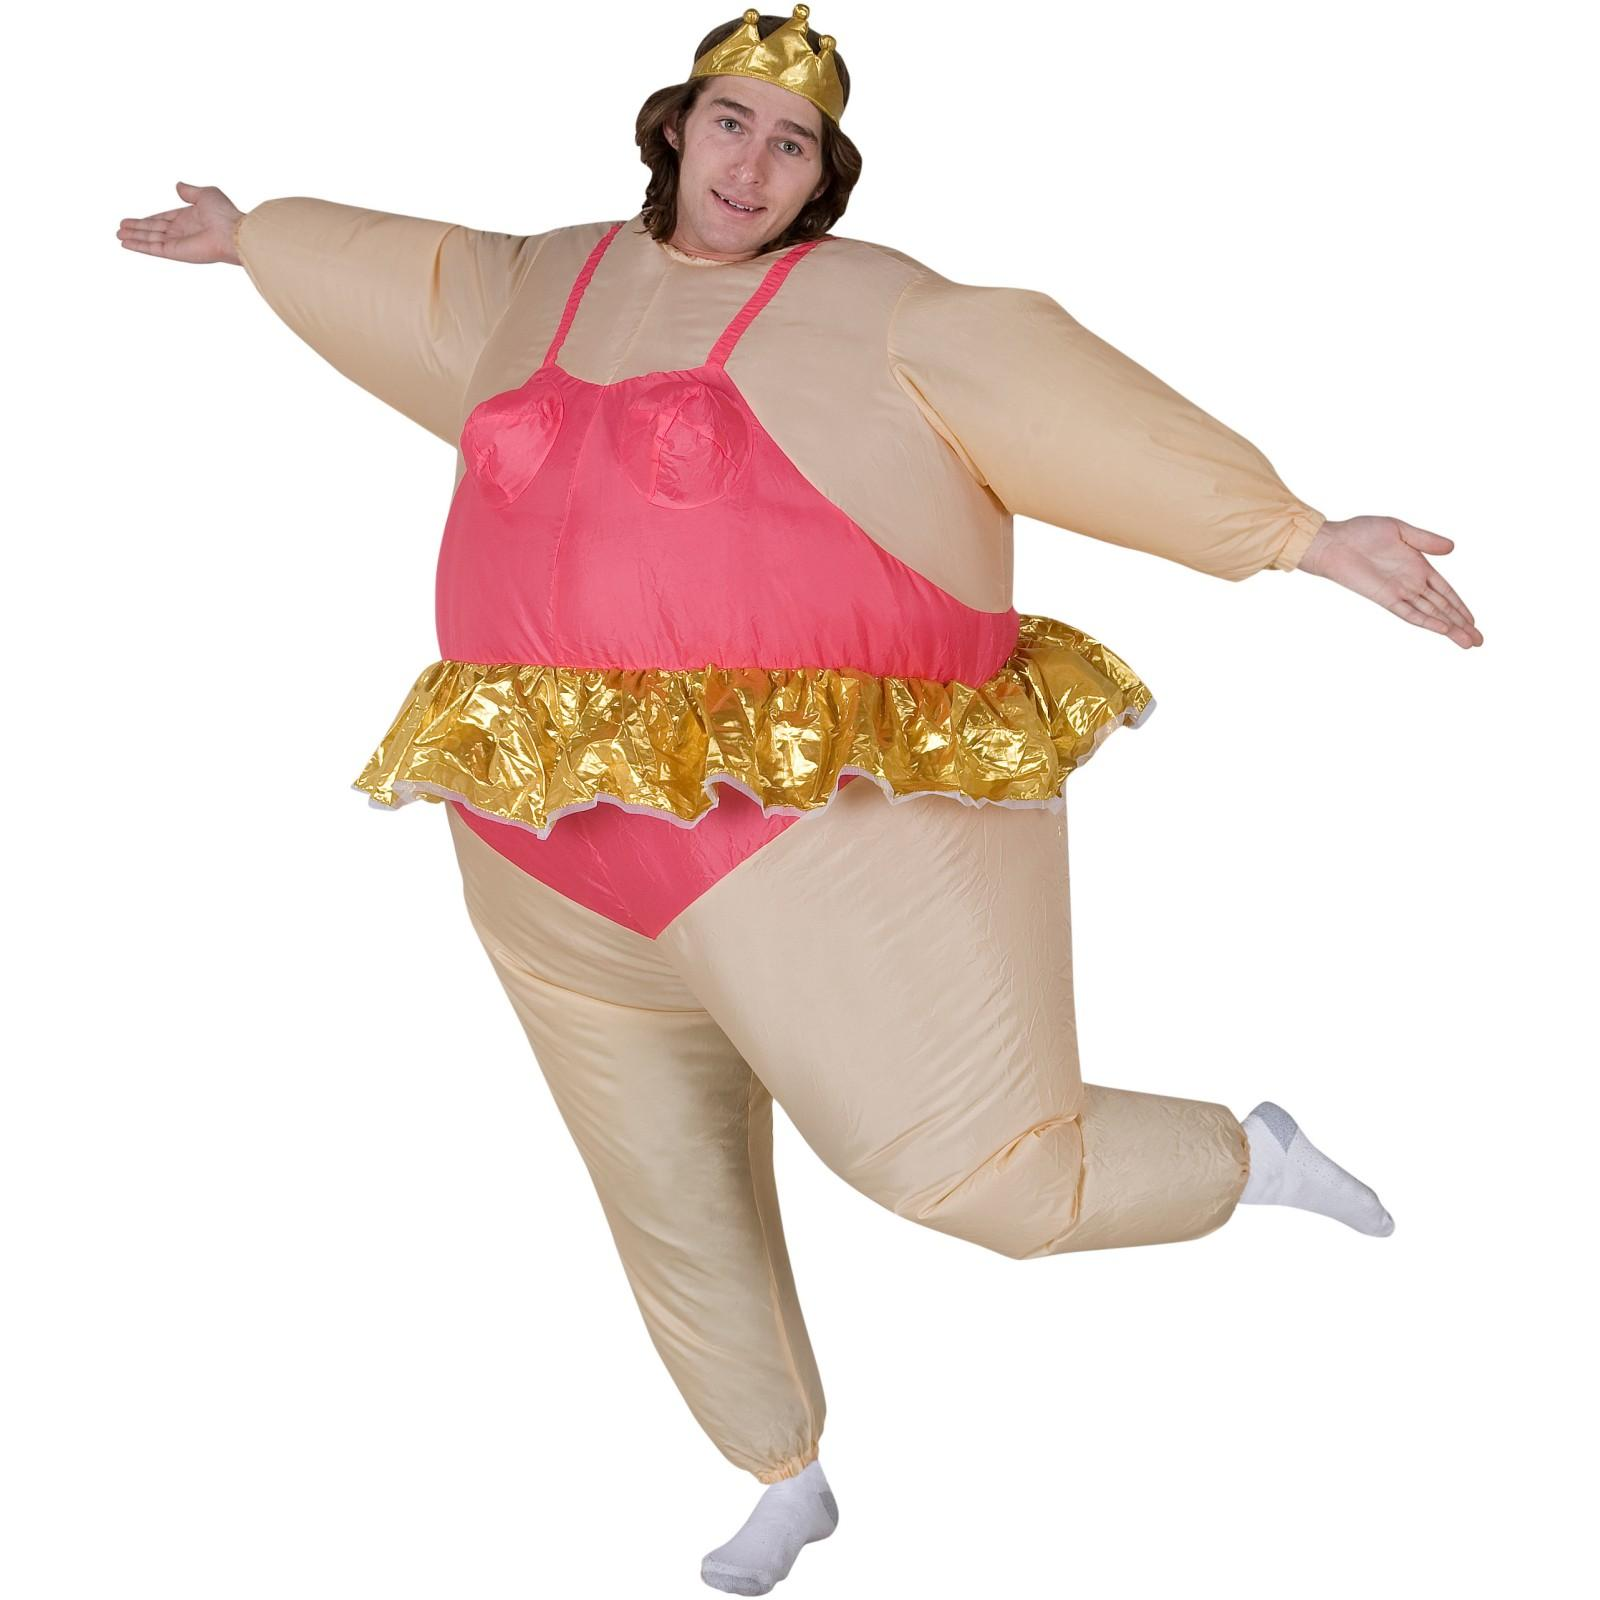 inflatable-ballerina-adult-costume-bc-31977.jpg